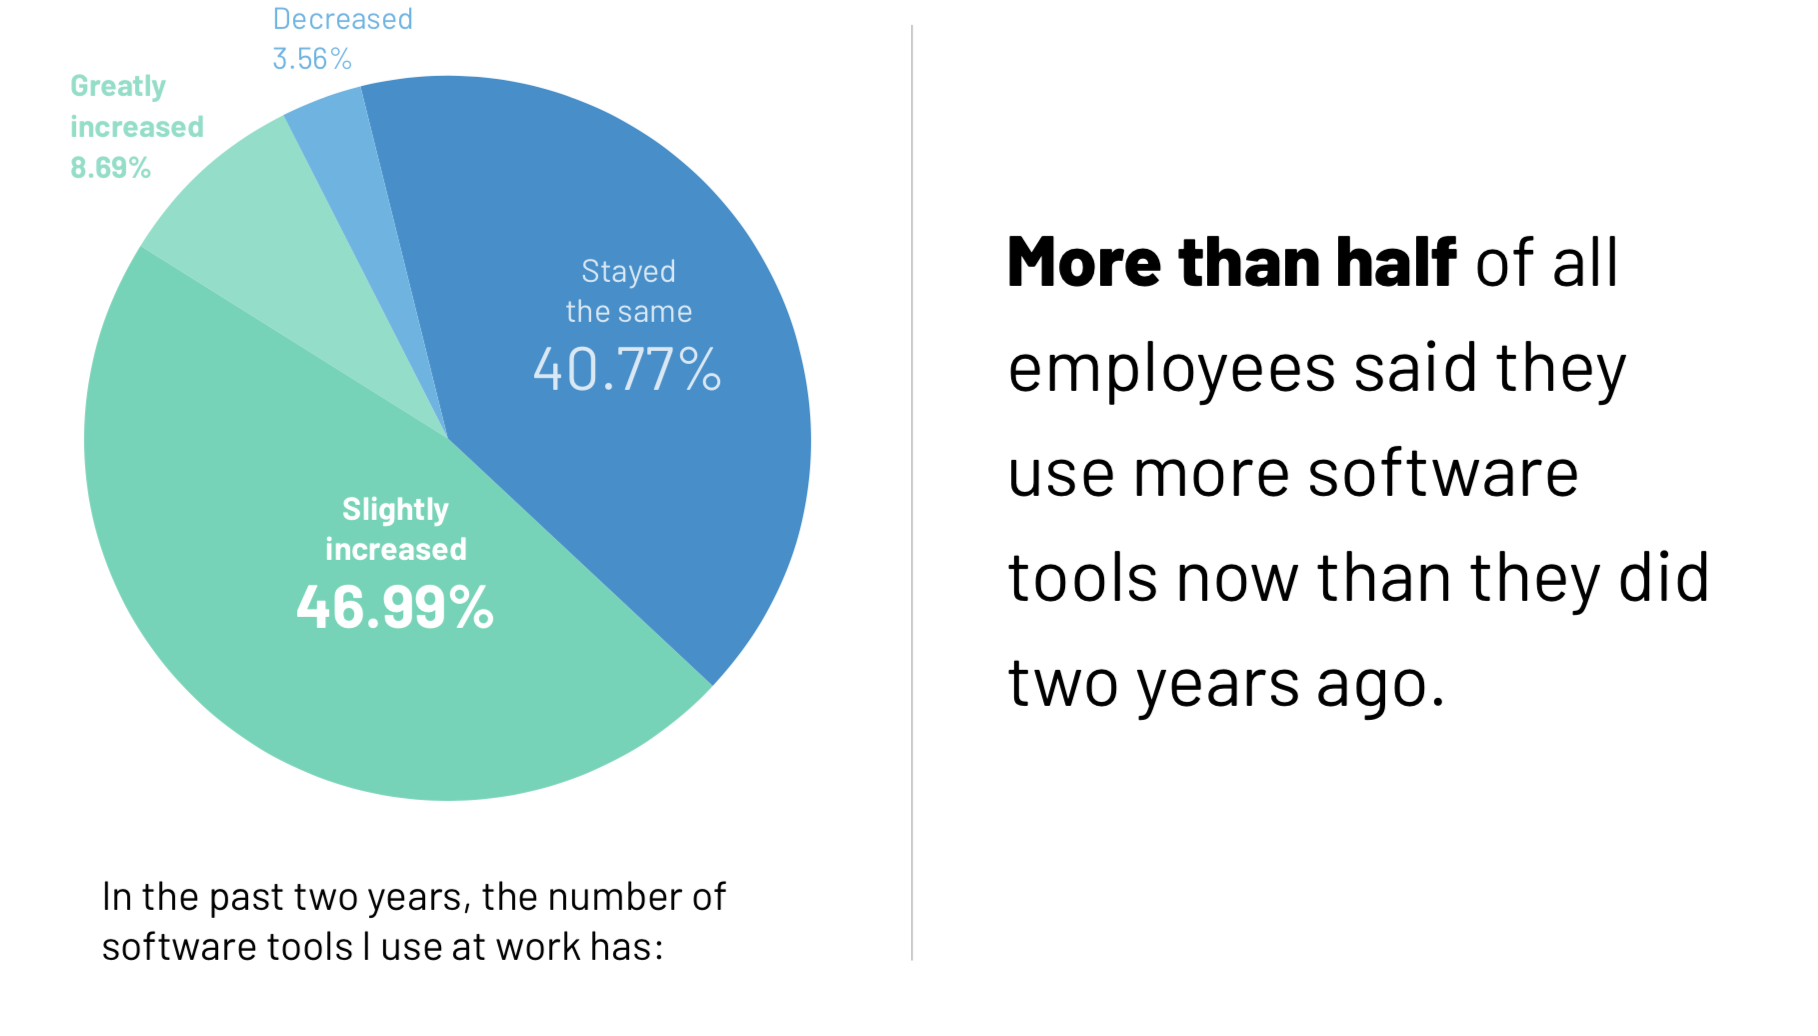 Employees use more software